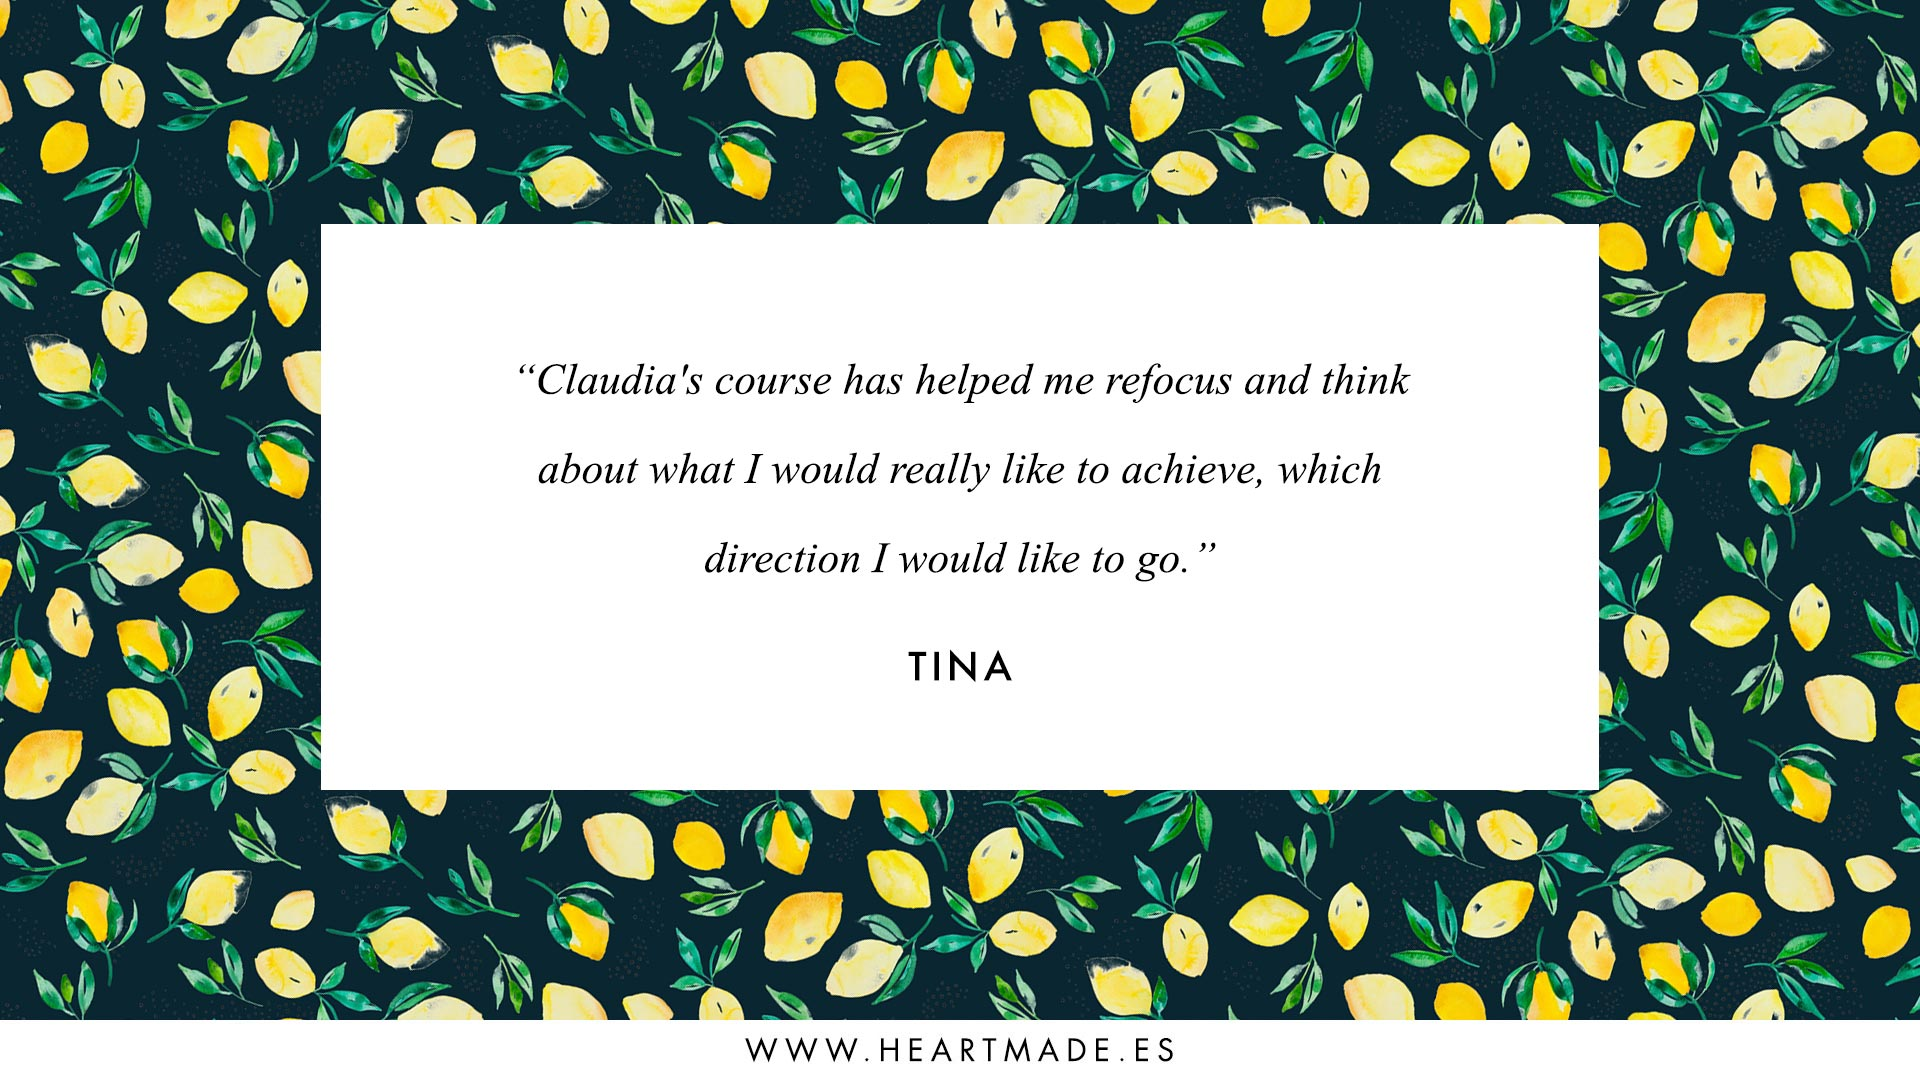 Claudia's course has helped me refocus and think about what I would really like to achieve, which direction I would like to go.